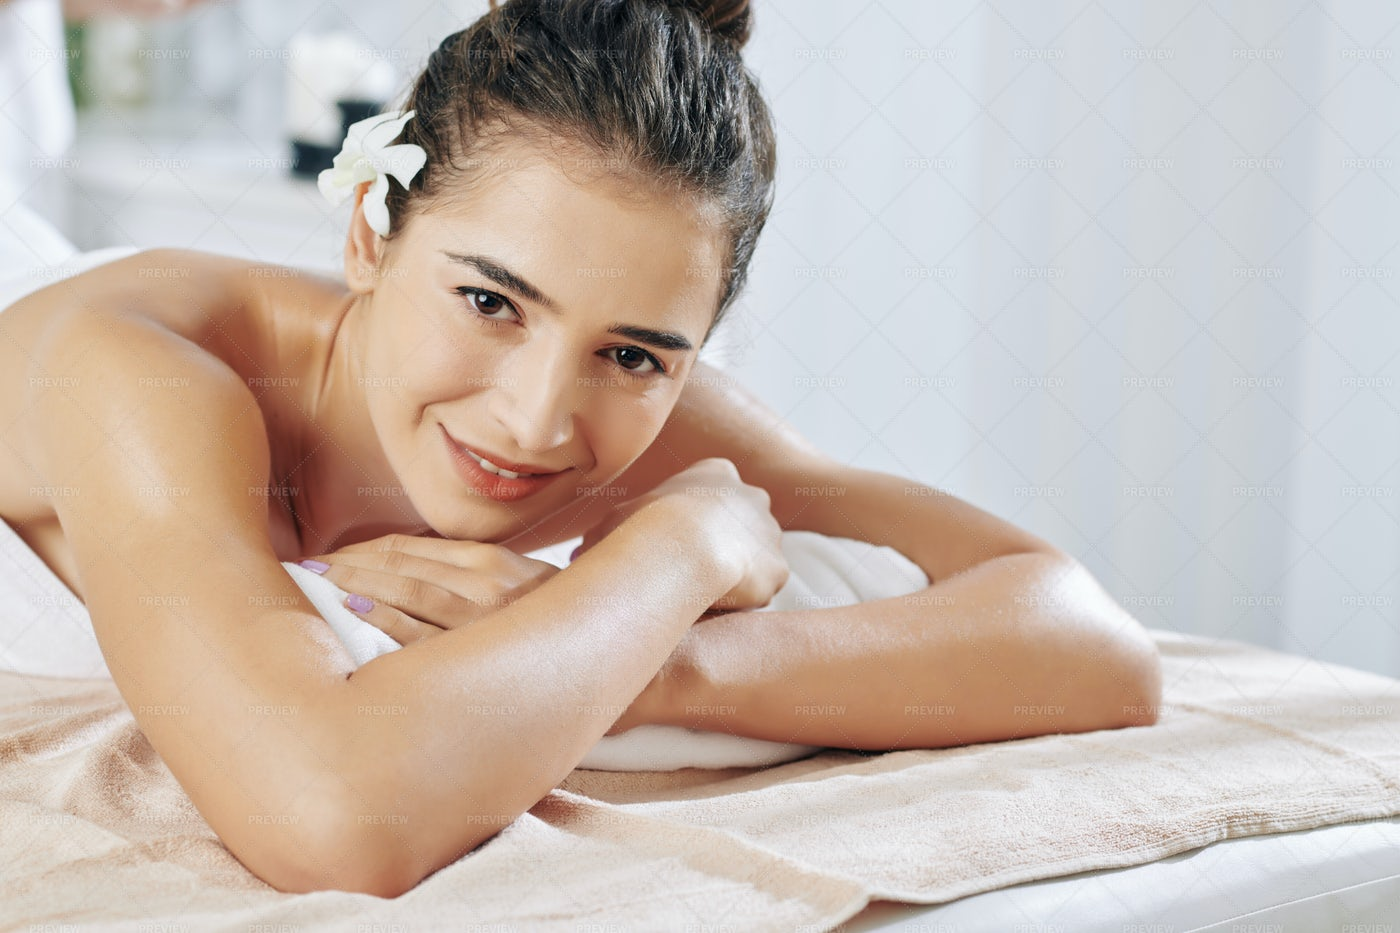 Woman Waiting For Relaxing Massage: Stock Photos